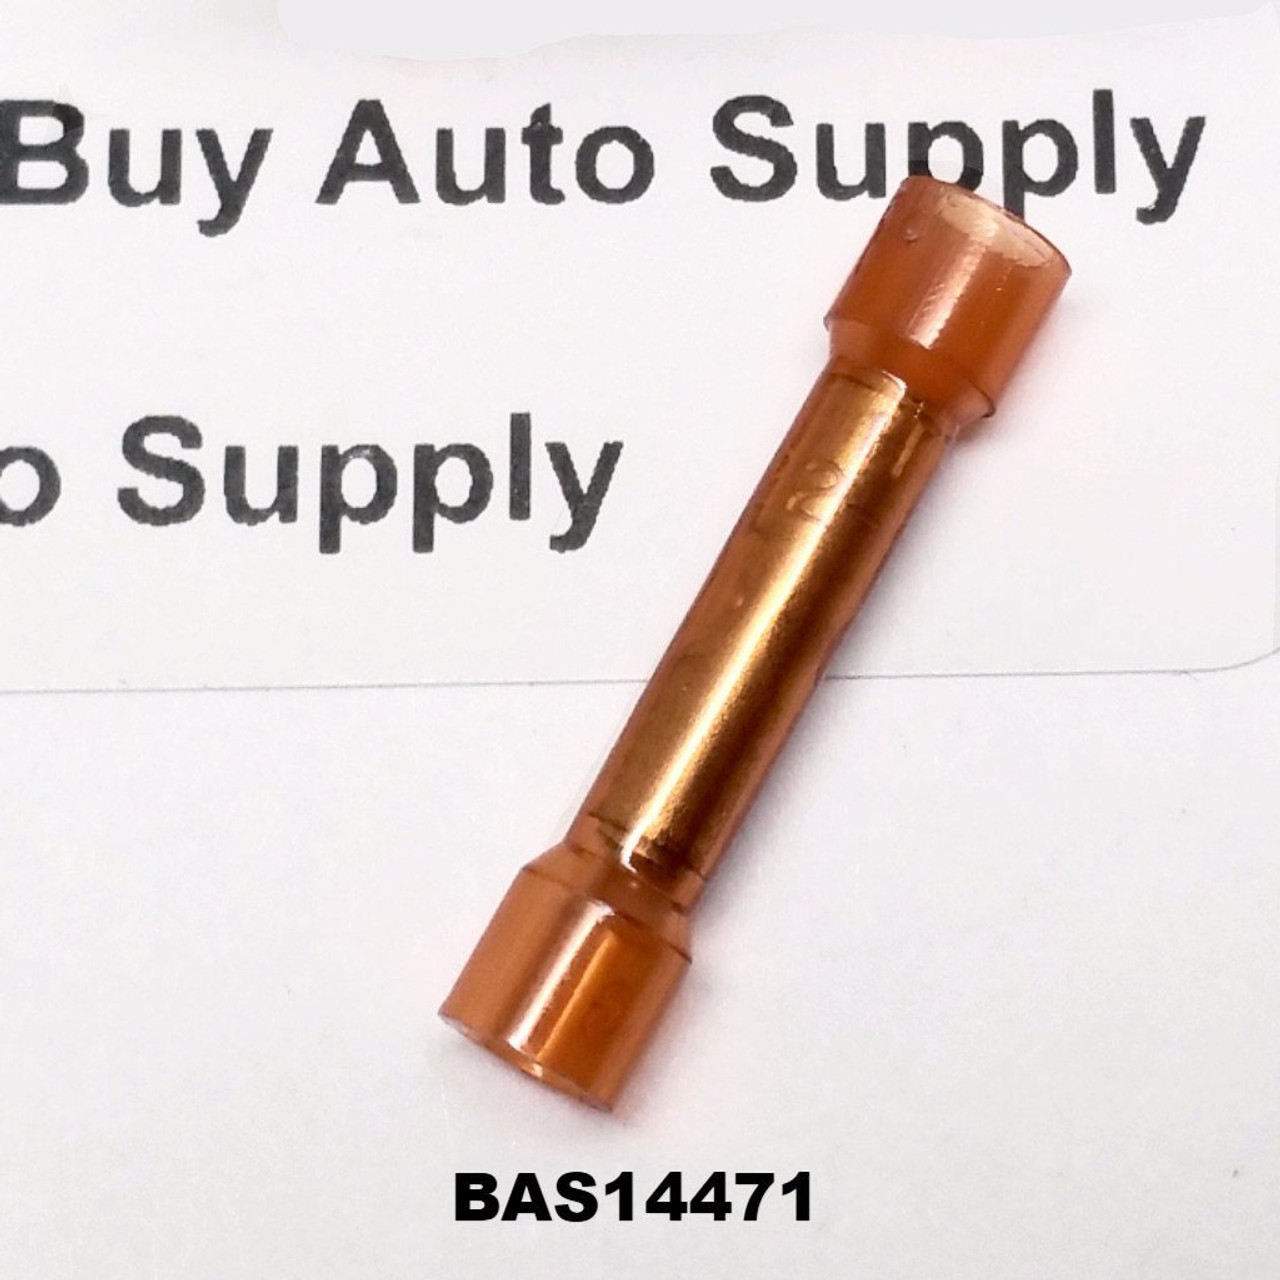 BAS14471 - Red Nylon Butt Connector - Made in USA - from Buy Auto Supply